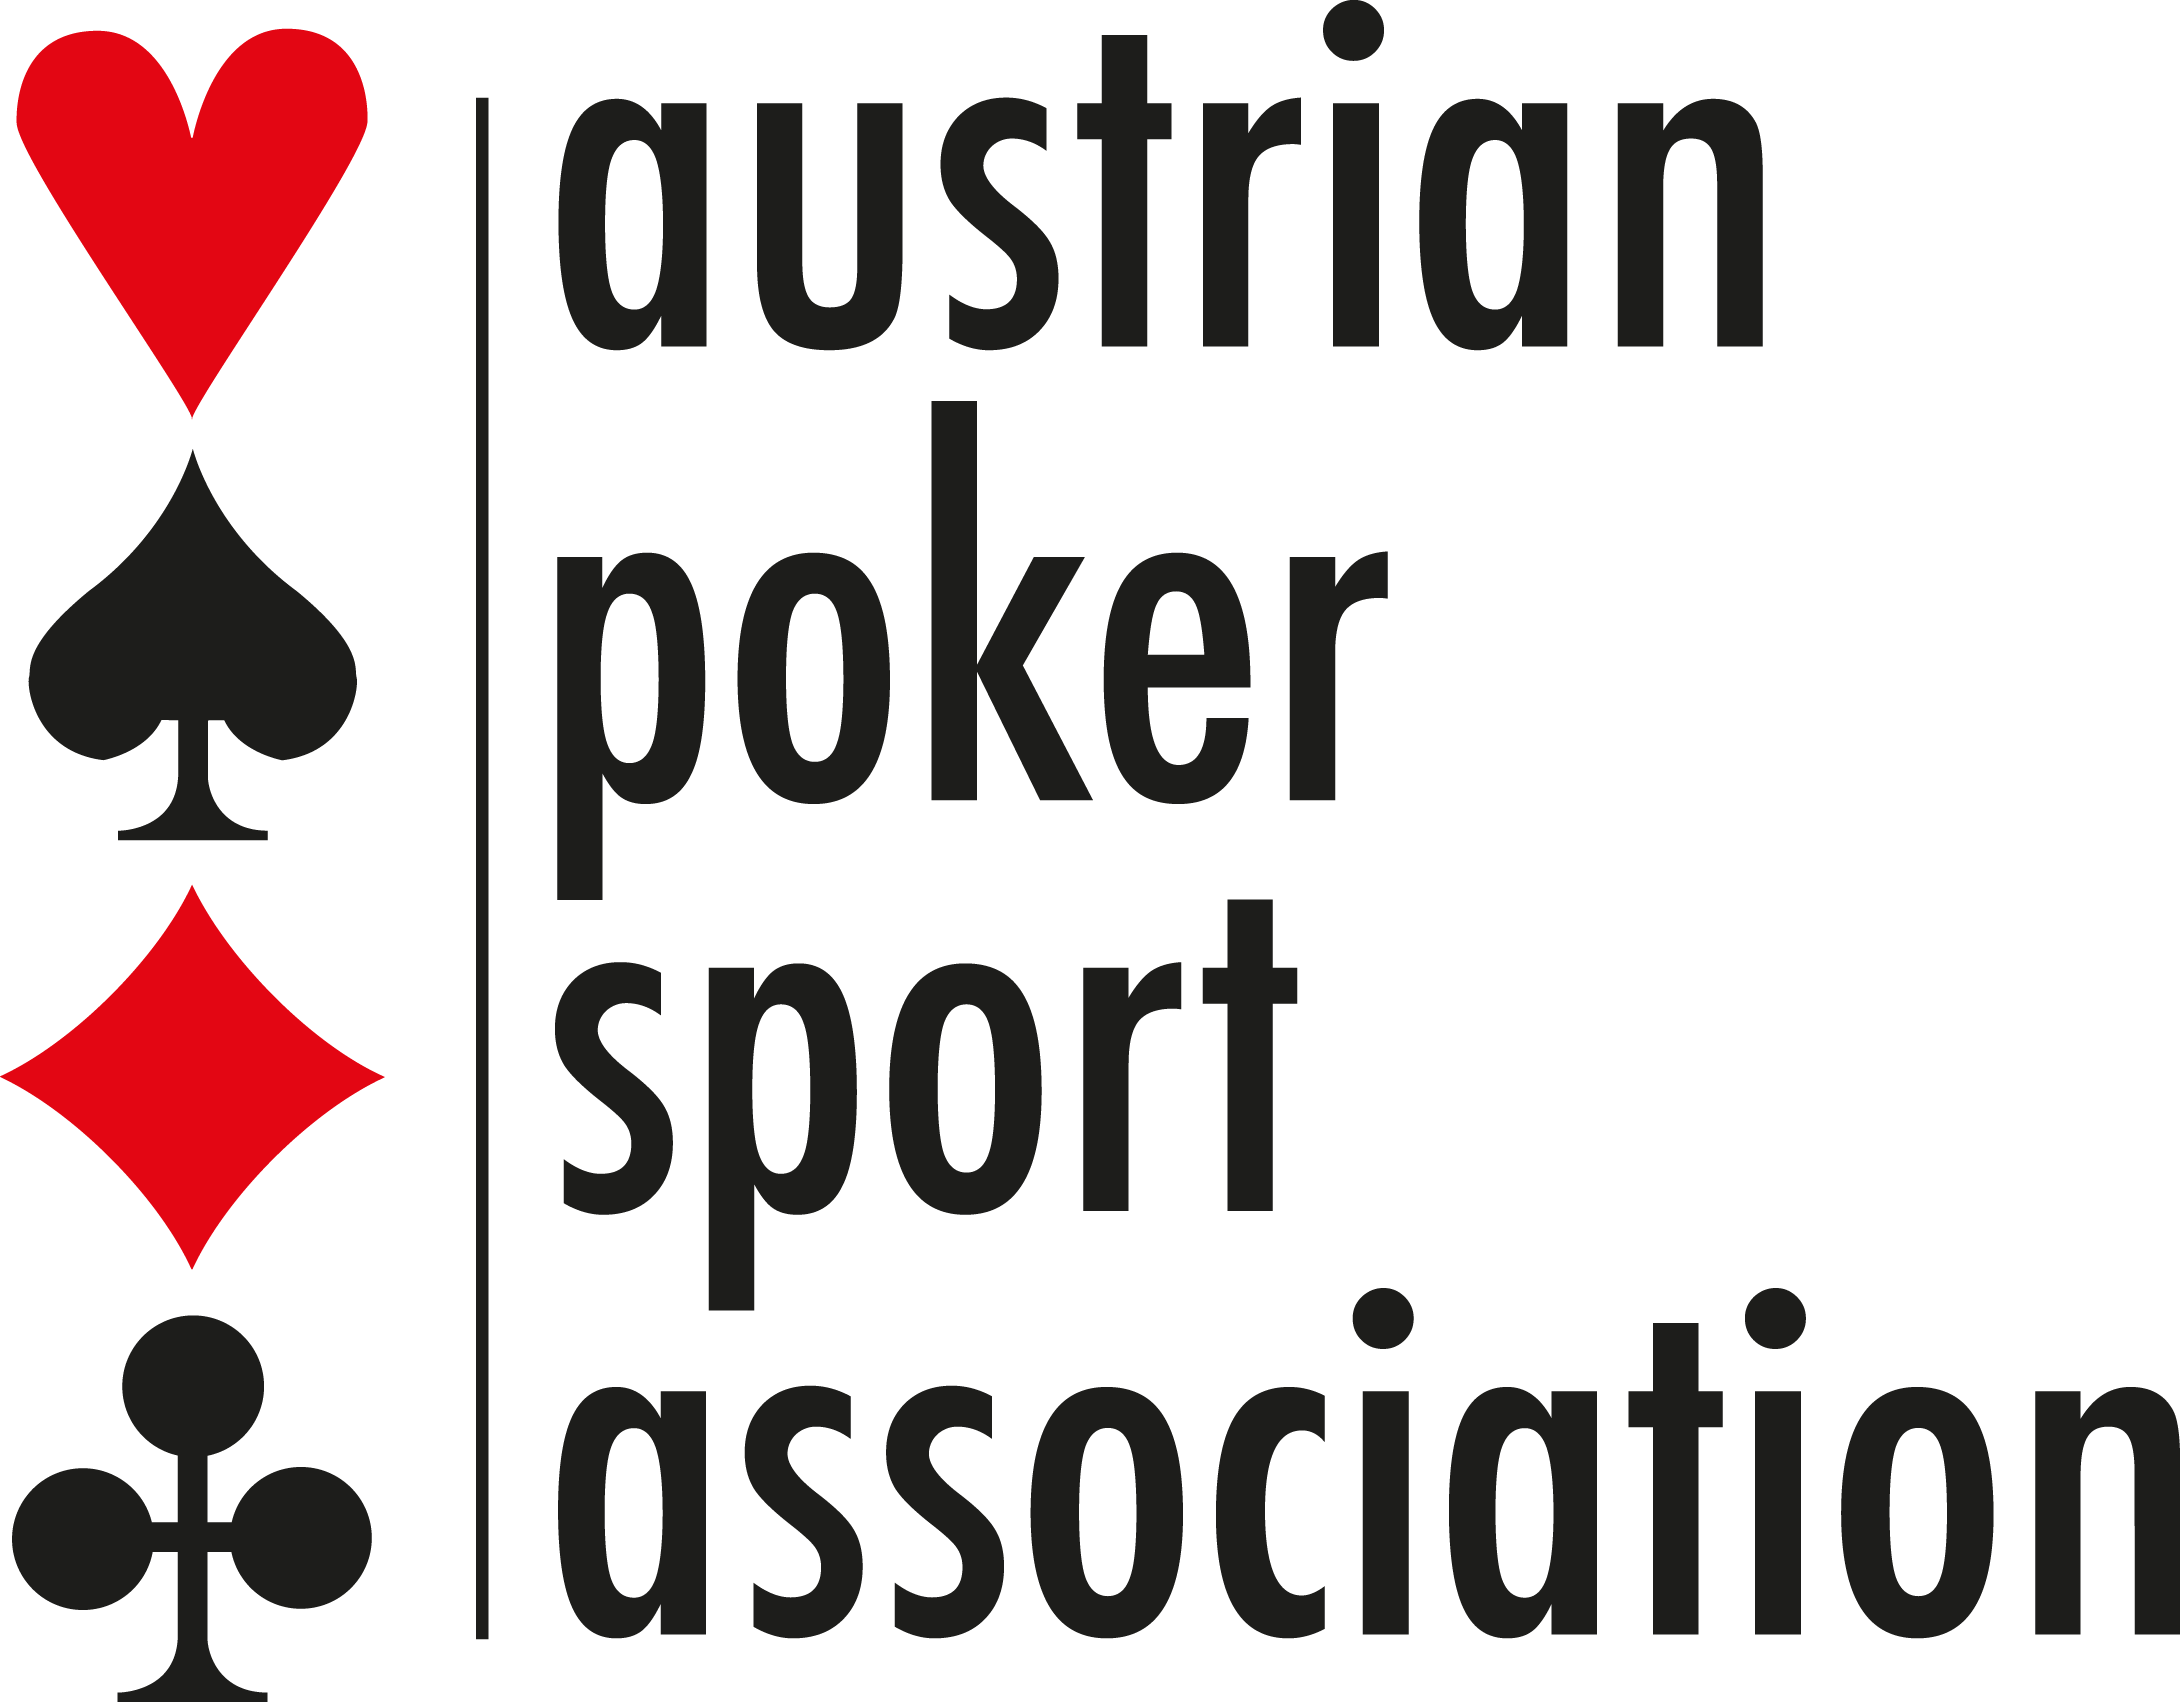 APSA &#8211; Austrian Pokersport Association